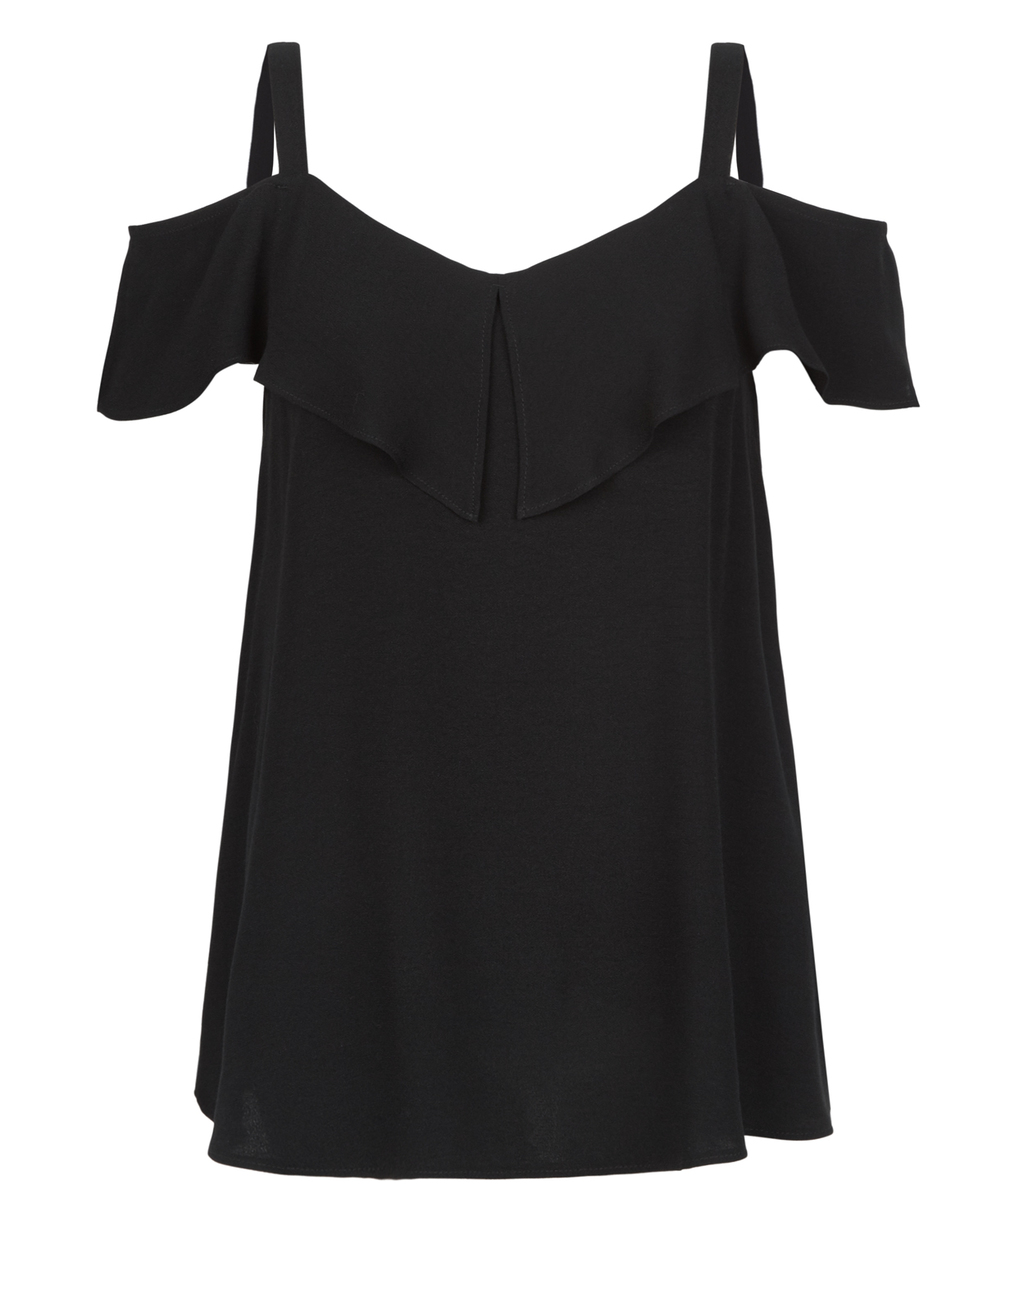 Lana Cold Shoulder Top - neckline: v-neck; pattern: plain; predominant colour: black; occasions: evening; length: standard; style: top; fibres: viscose/rayon - 100%; fit: body skimming; shoulder detail: cut out shoulder; sleeve length: short sleeve; sleeve style: standard; pattern type: fabric; texture group: other - light to midweight; season: s/s 2016; wardrobe: event